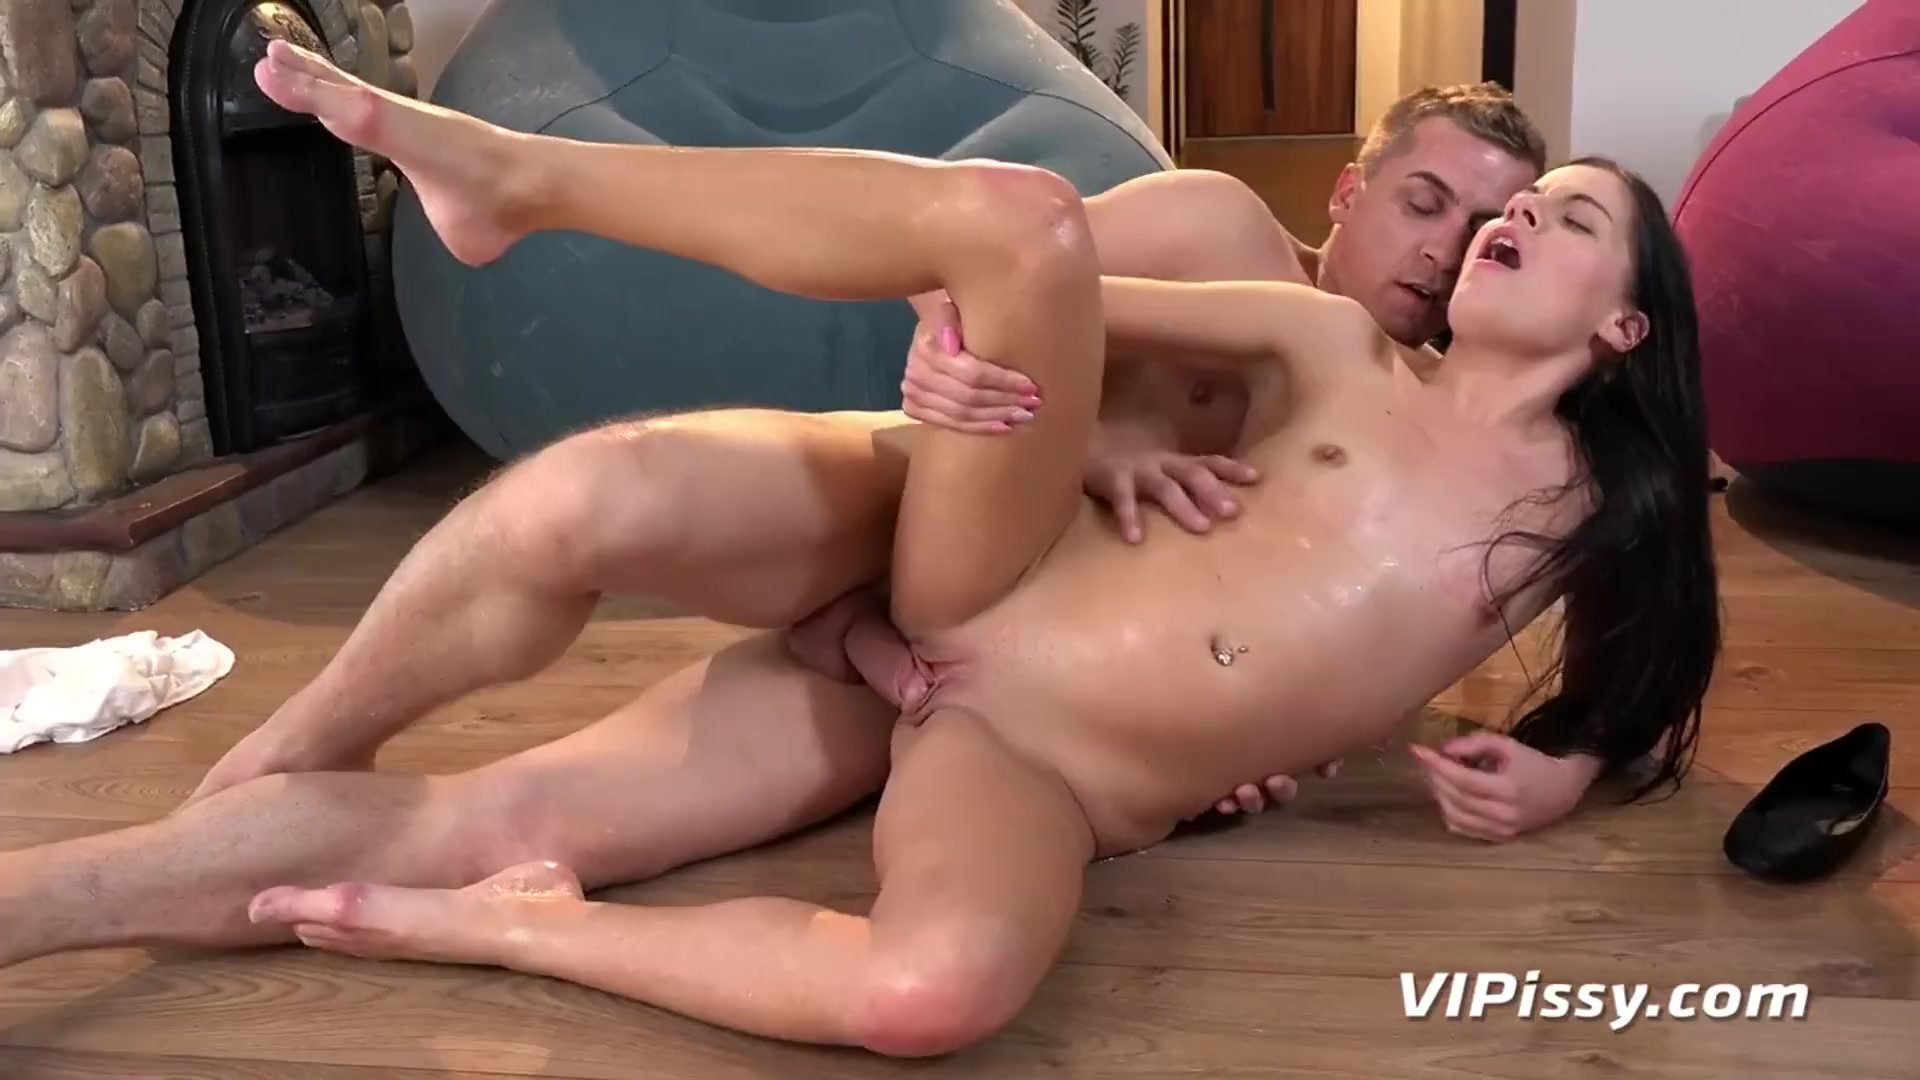 Piss Drinking - Thirsty Czcech girl drinks piss after hard fucking